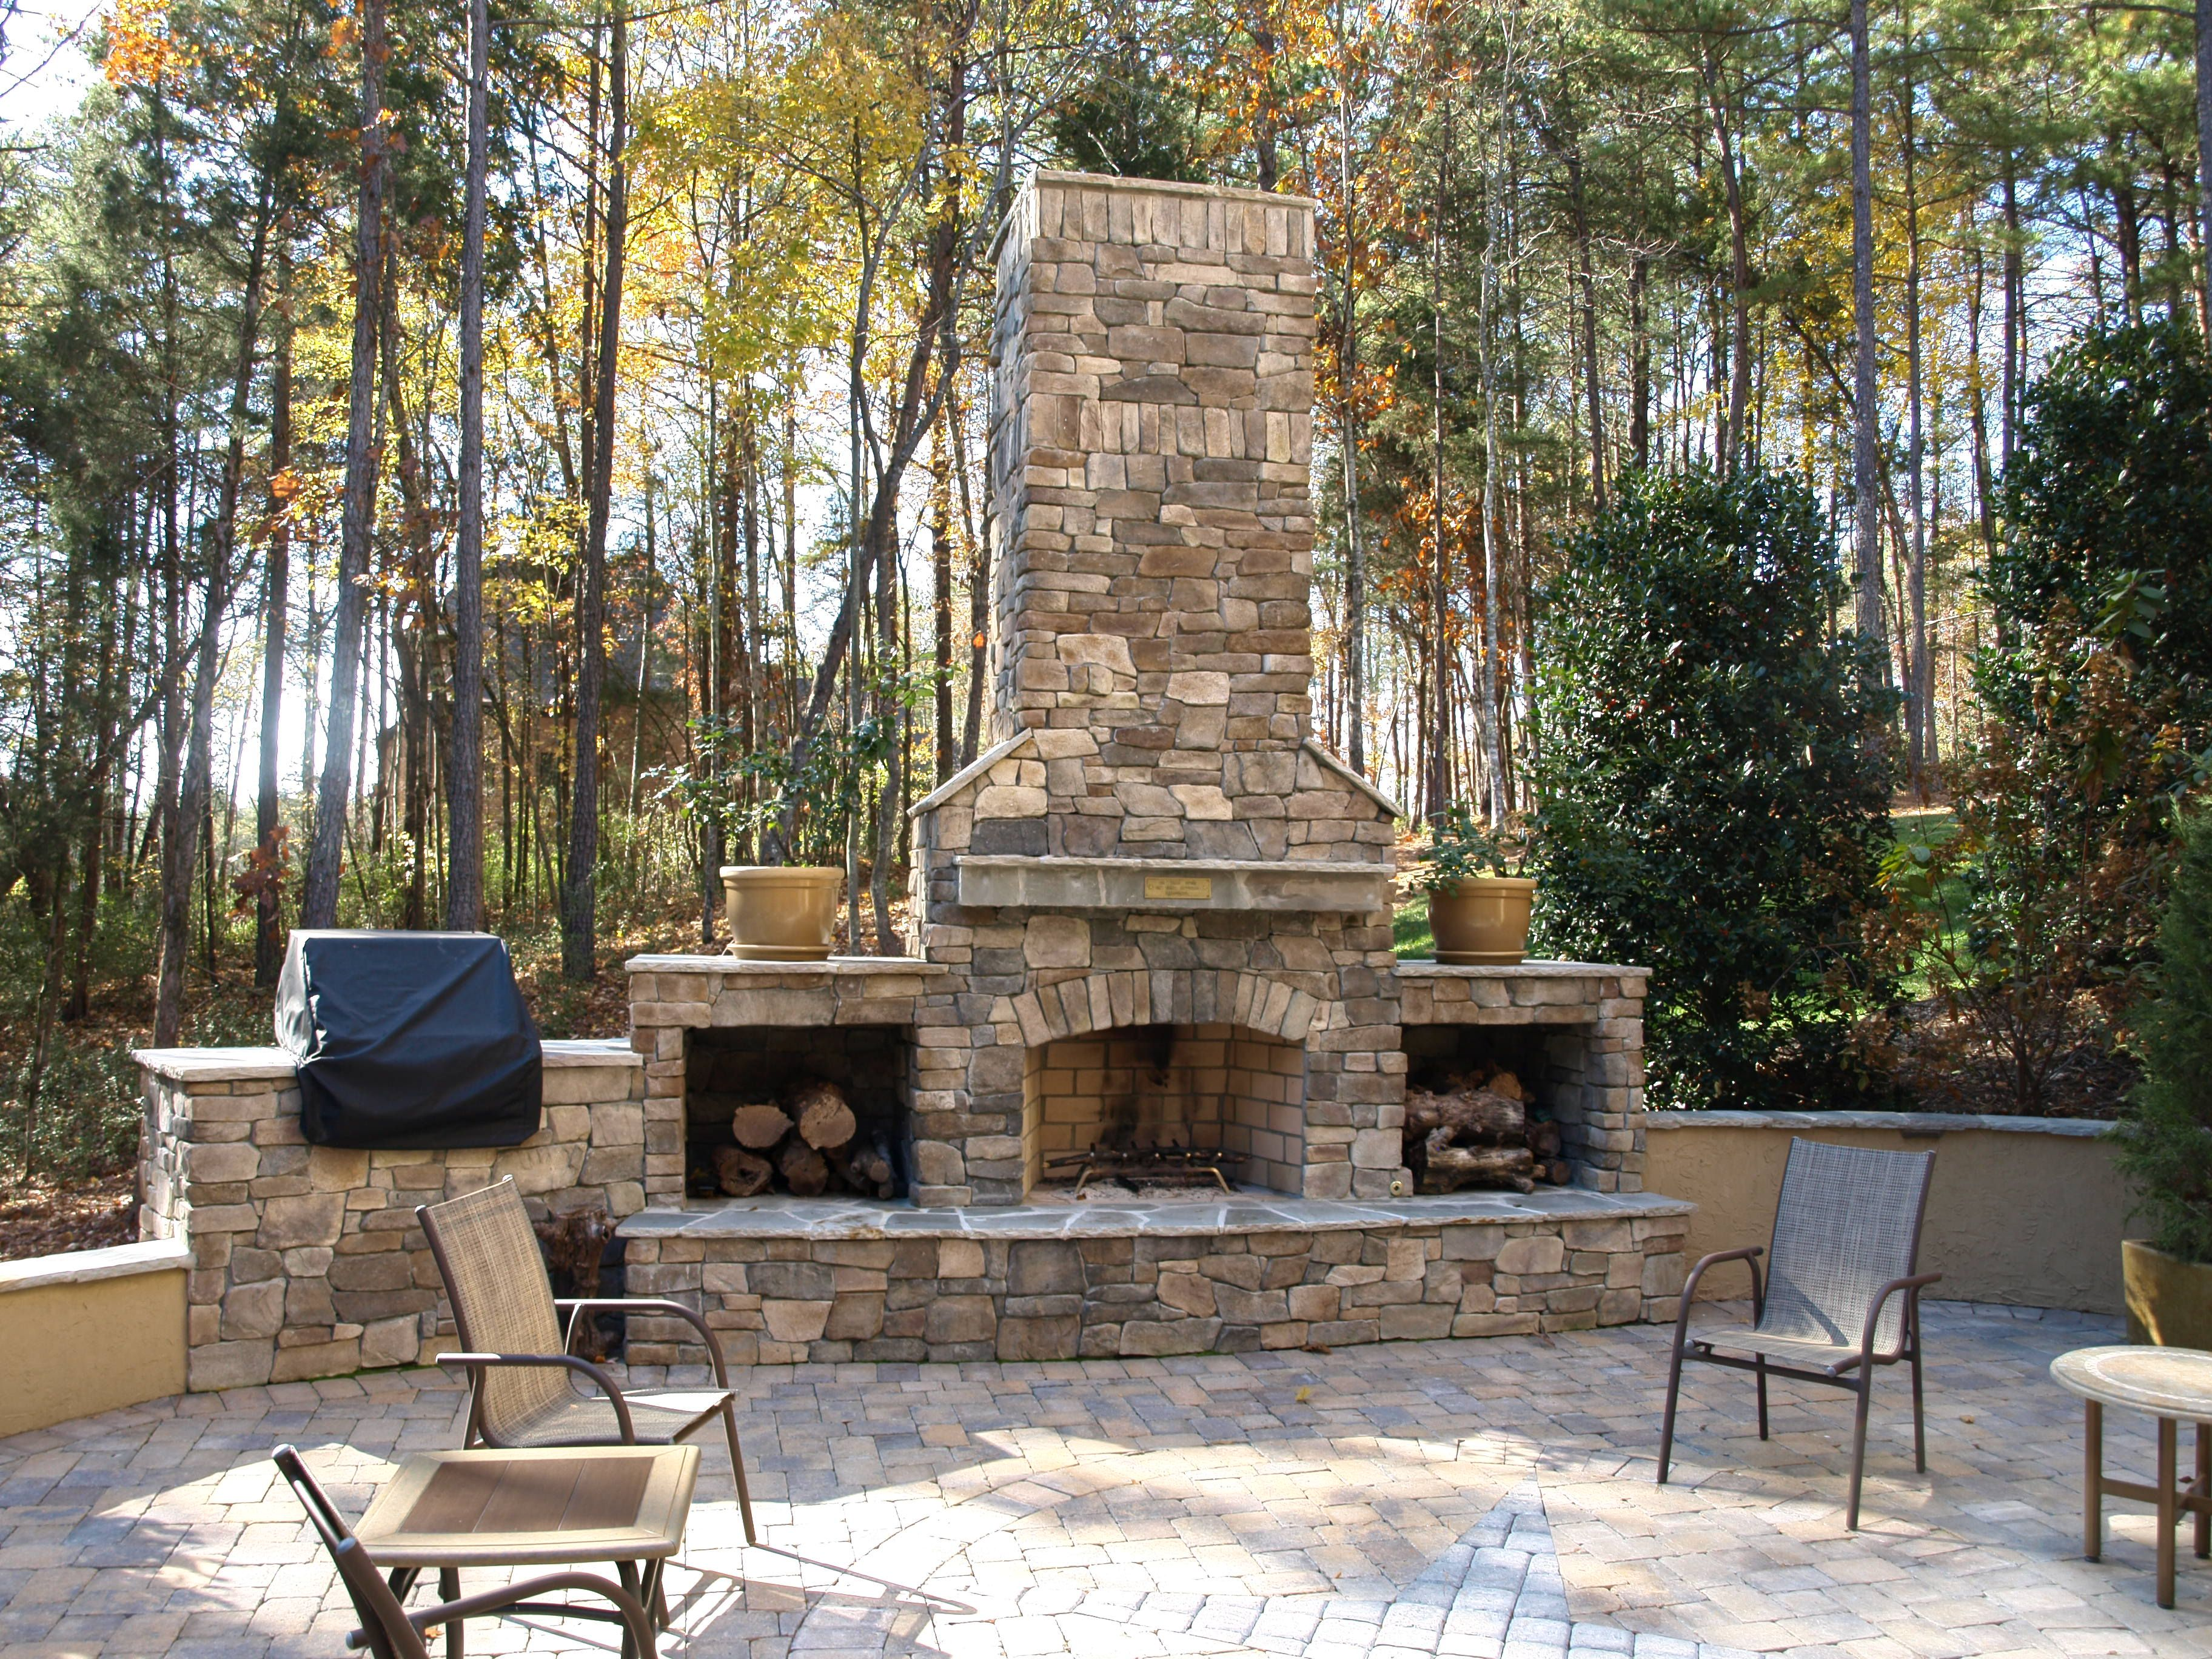 17 best images about outdoor fireplace on pinterest fireplace design stone fireplaces and sunken fire pits - Outdoor Fireplace Design Ideas